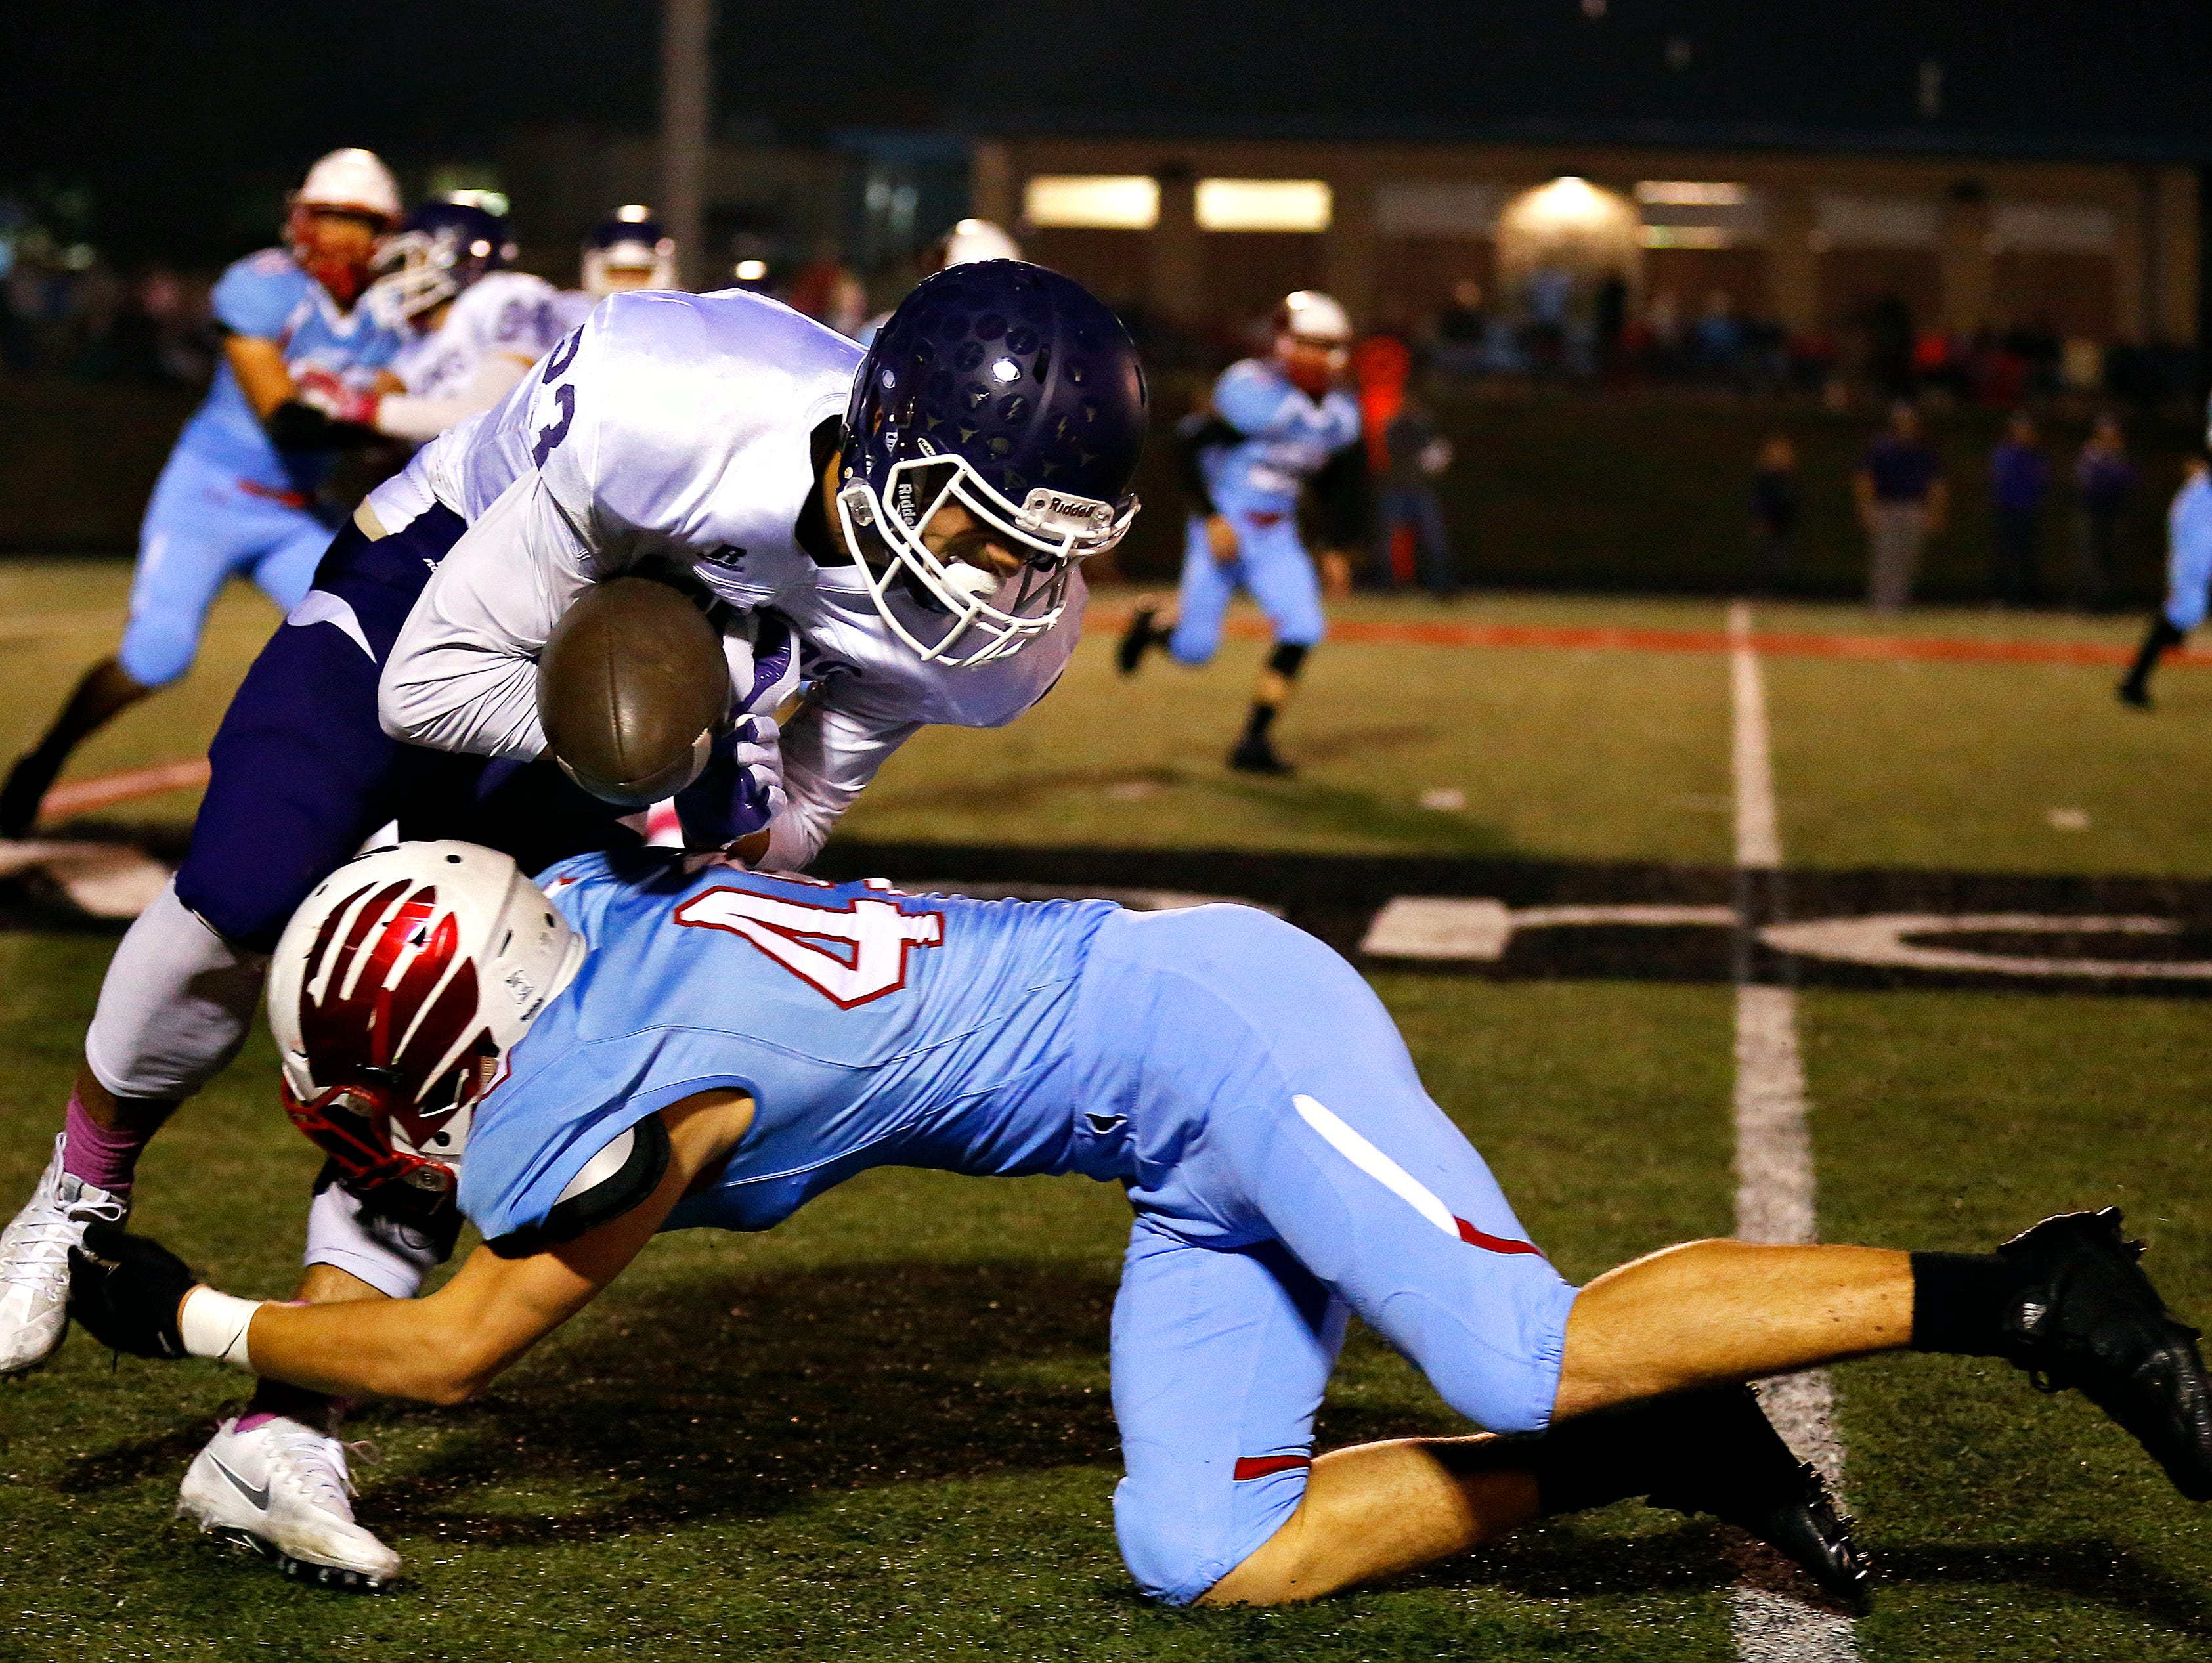 Glendale High School defensive ack Carson Liston (45) jars the ball loose from Lakers kick returner Jacon Hill (23) during first quarter action of the game between Glendale High School and Camdenton High School at Lowe Stadium in Springfield, Mo. on Oct. 14, 2016.